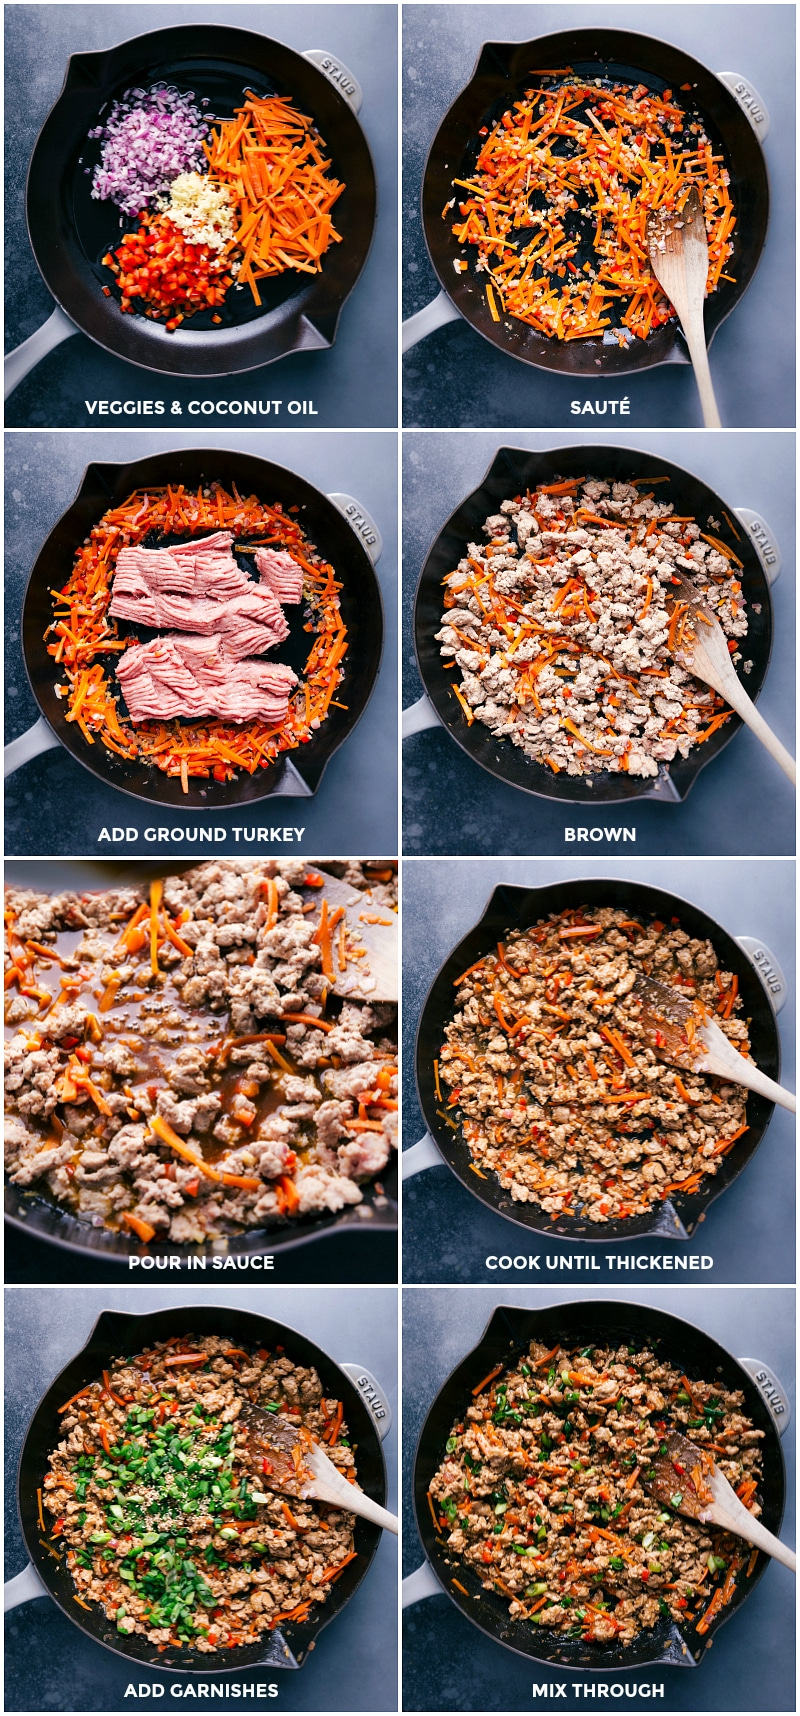 Process shots for making Asian Ground Turkey: cooking the veggies and turkey.